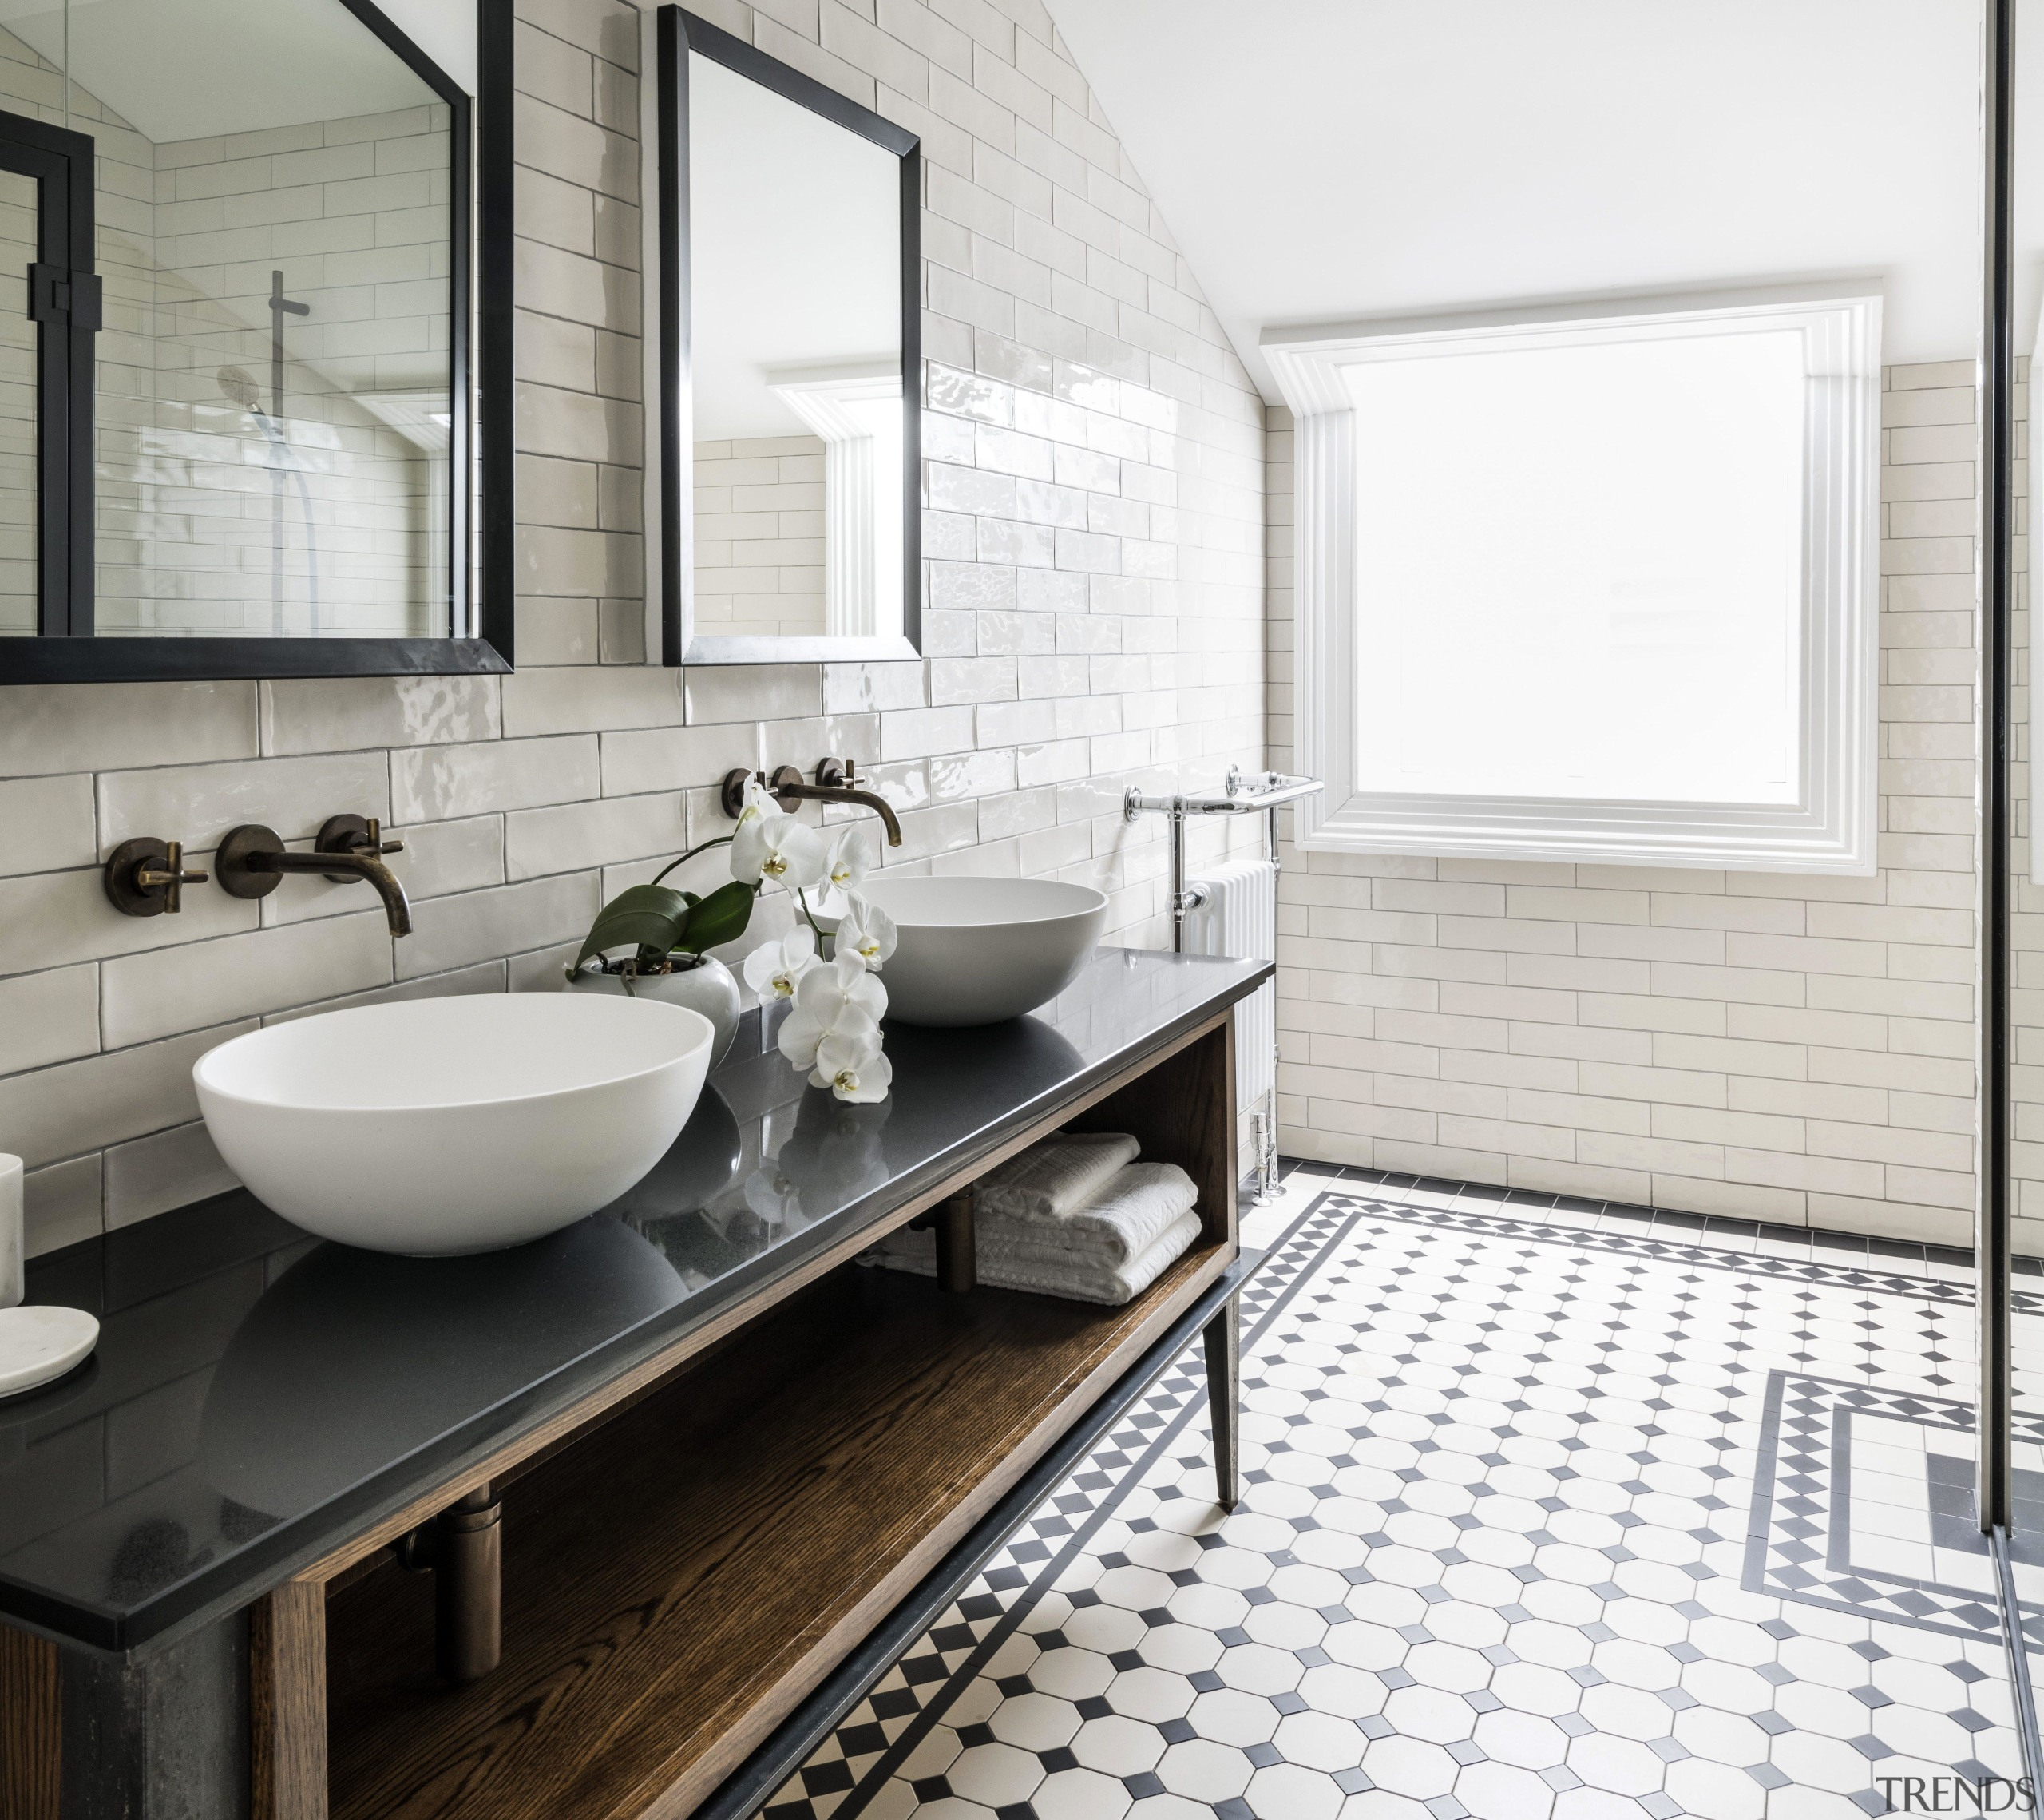 Detail by Davinia Sutton – Highly Commended – architecture, bathroom, black-and-white, building, ceramic, floor, flooring, furniture, home, house, interior design, plumbing fixture, property, real estate, room, sink, tile, wall, white